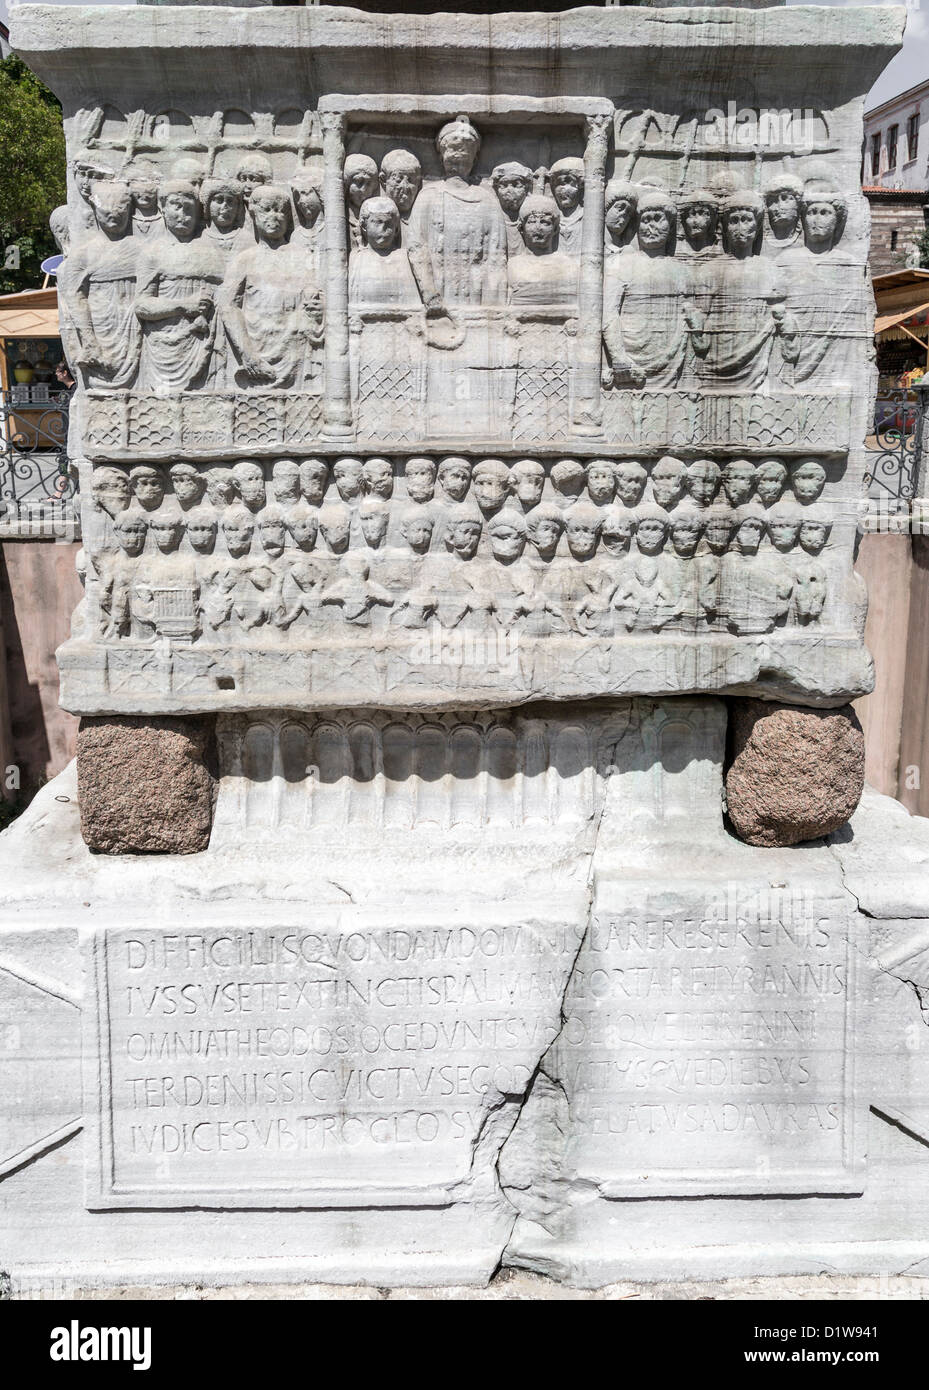 Detail of the pedestal of the Egyptian obelisk, Theodosius I offers laurels of victory, Sultan Ahmet meydan, Istanbul, - Stock Image